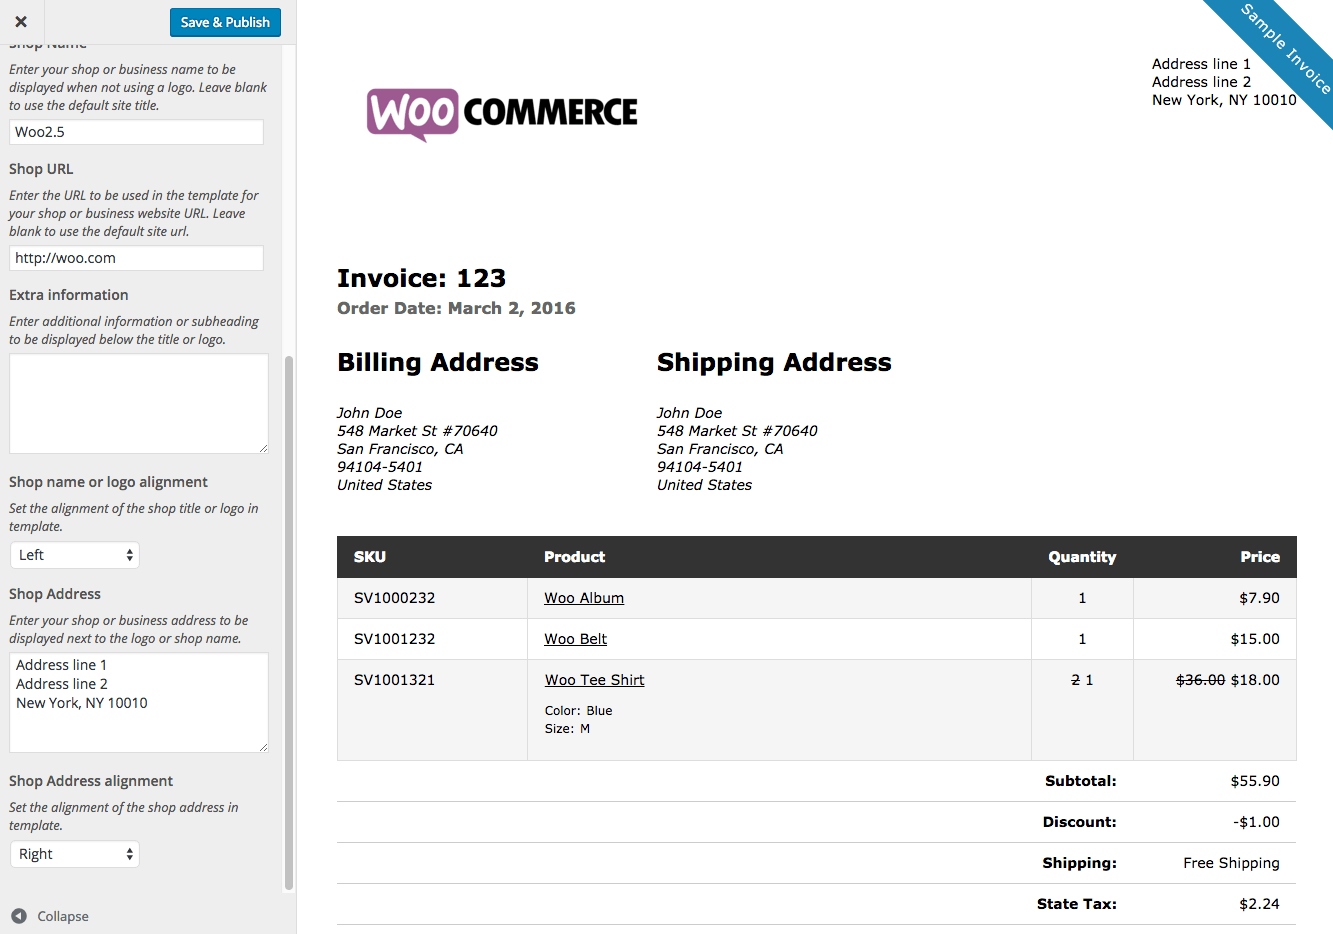 Patriotexpressus  Winsome Woocommerce Print Invoices Amp Packing Lists  Woocommerce Docs With Lovely Woocommerce Print Invoices  Packing Lists Customizer With Delightful Cash Invoice Receipt Also Invoice Paid Template In Addition How To Make A Good Invoice And Where To Buy Invoice Pads As Well As Fake Paypal Invoice Generator Additionally Ups Invoice Scam From Docswoocommercecom With Patriotexpressus  Lovely Woocommerce Print Invoices Amp Packing Lists  Woocommerce Docs With Delightful Woocommerce Print Invoices  Packing Lists Customizer And Winsome Cash Invoice Receipt Also Invoice Paid Template In Addition How To Make A Good Invoice From Docswoocommercecom